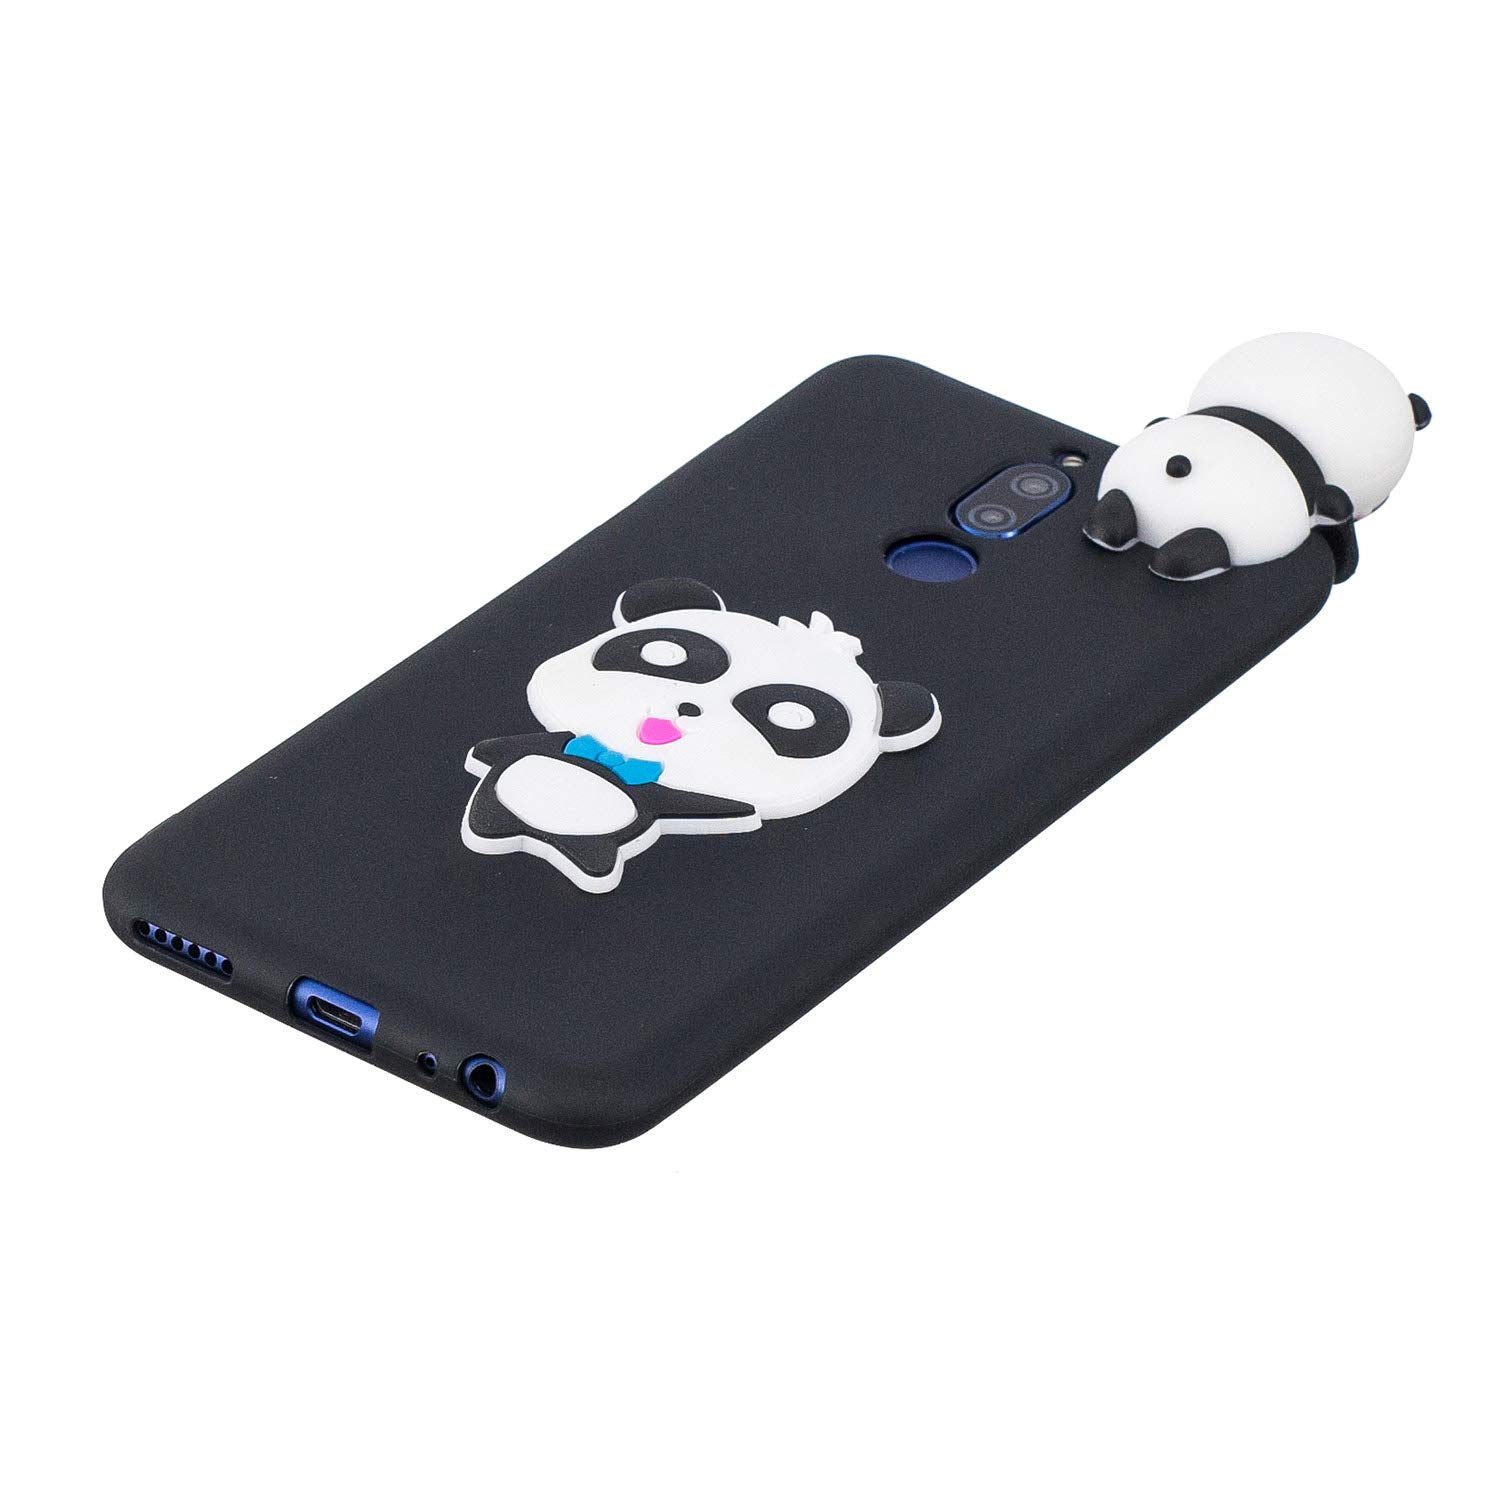 for Huawei Mate 10 Lite Silicone Case with Screen Protector,QFFUN 3D Cartoon [Panda] Pattern Design Soft Flexible Slim Fit Gel Rubber Cover,Shockproof Anti-Scratch Protective Case Bumper by QFFUN (Image #3)